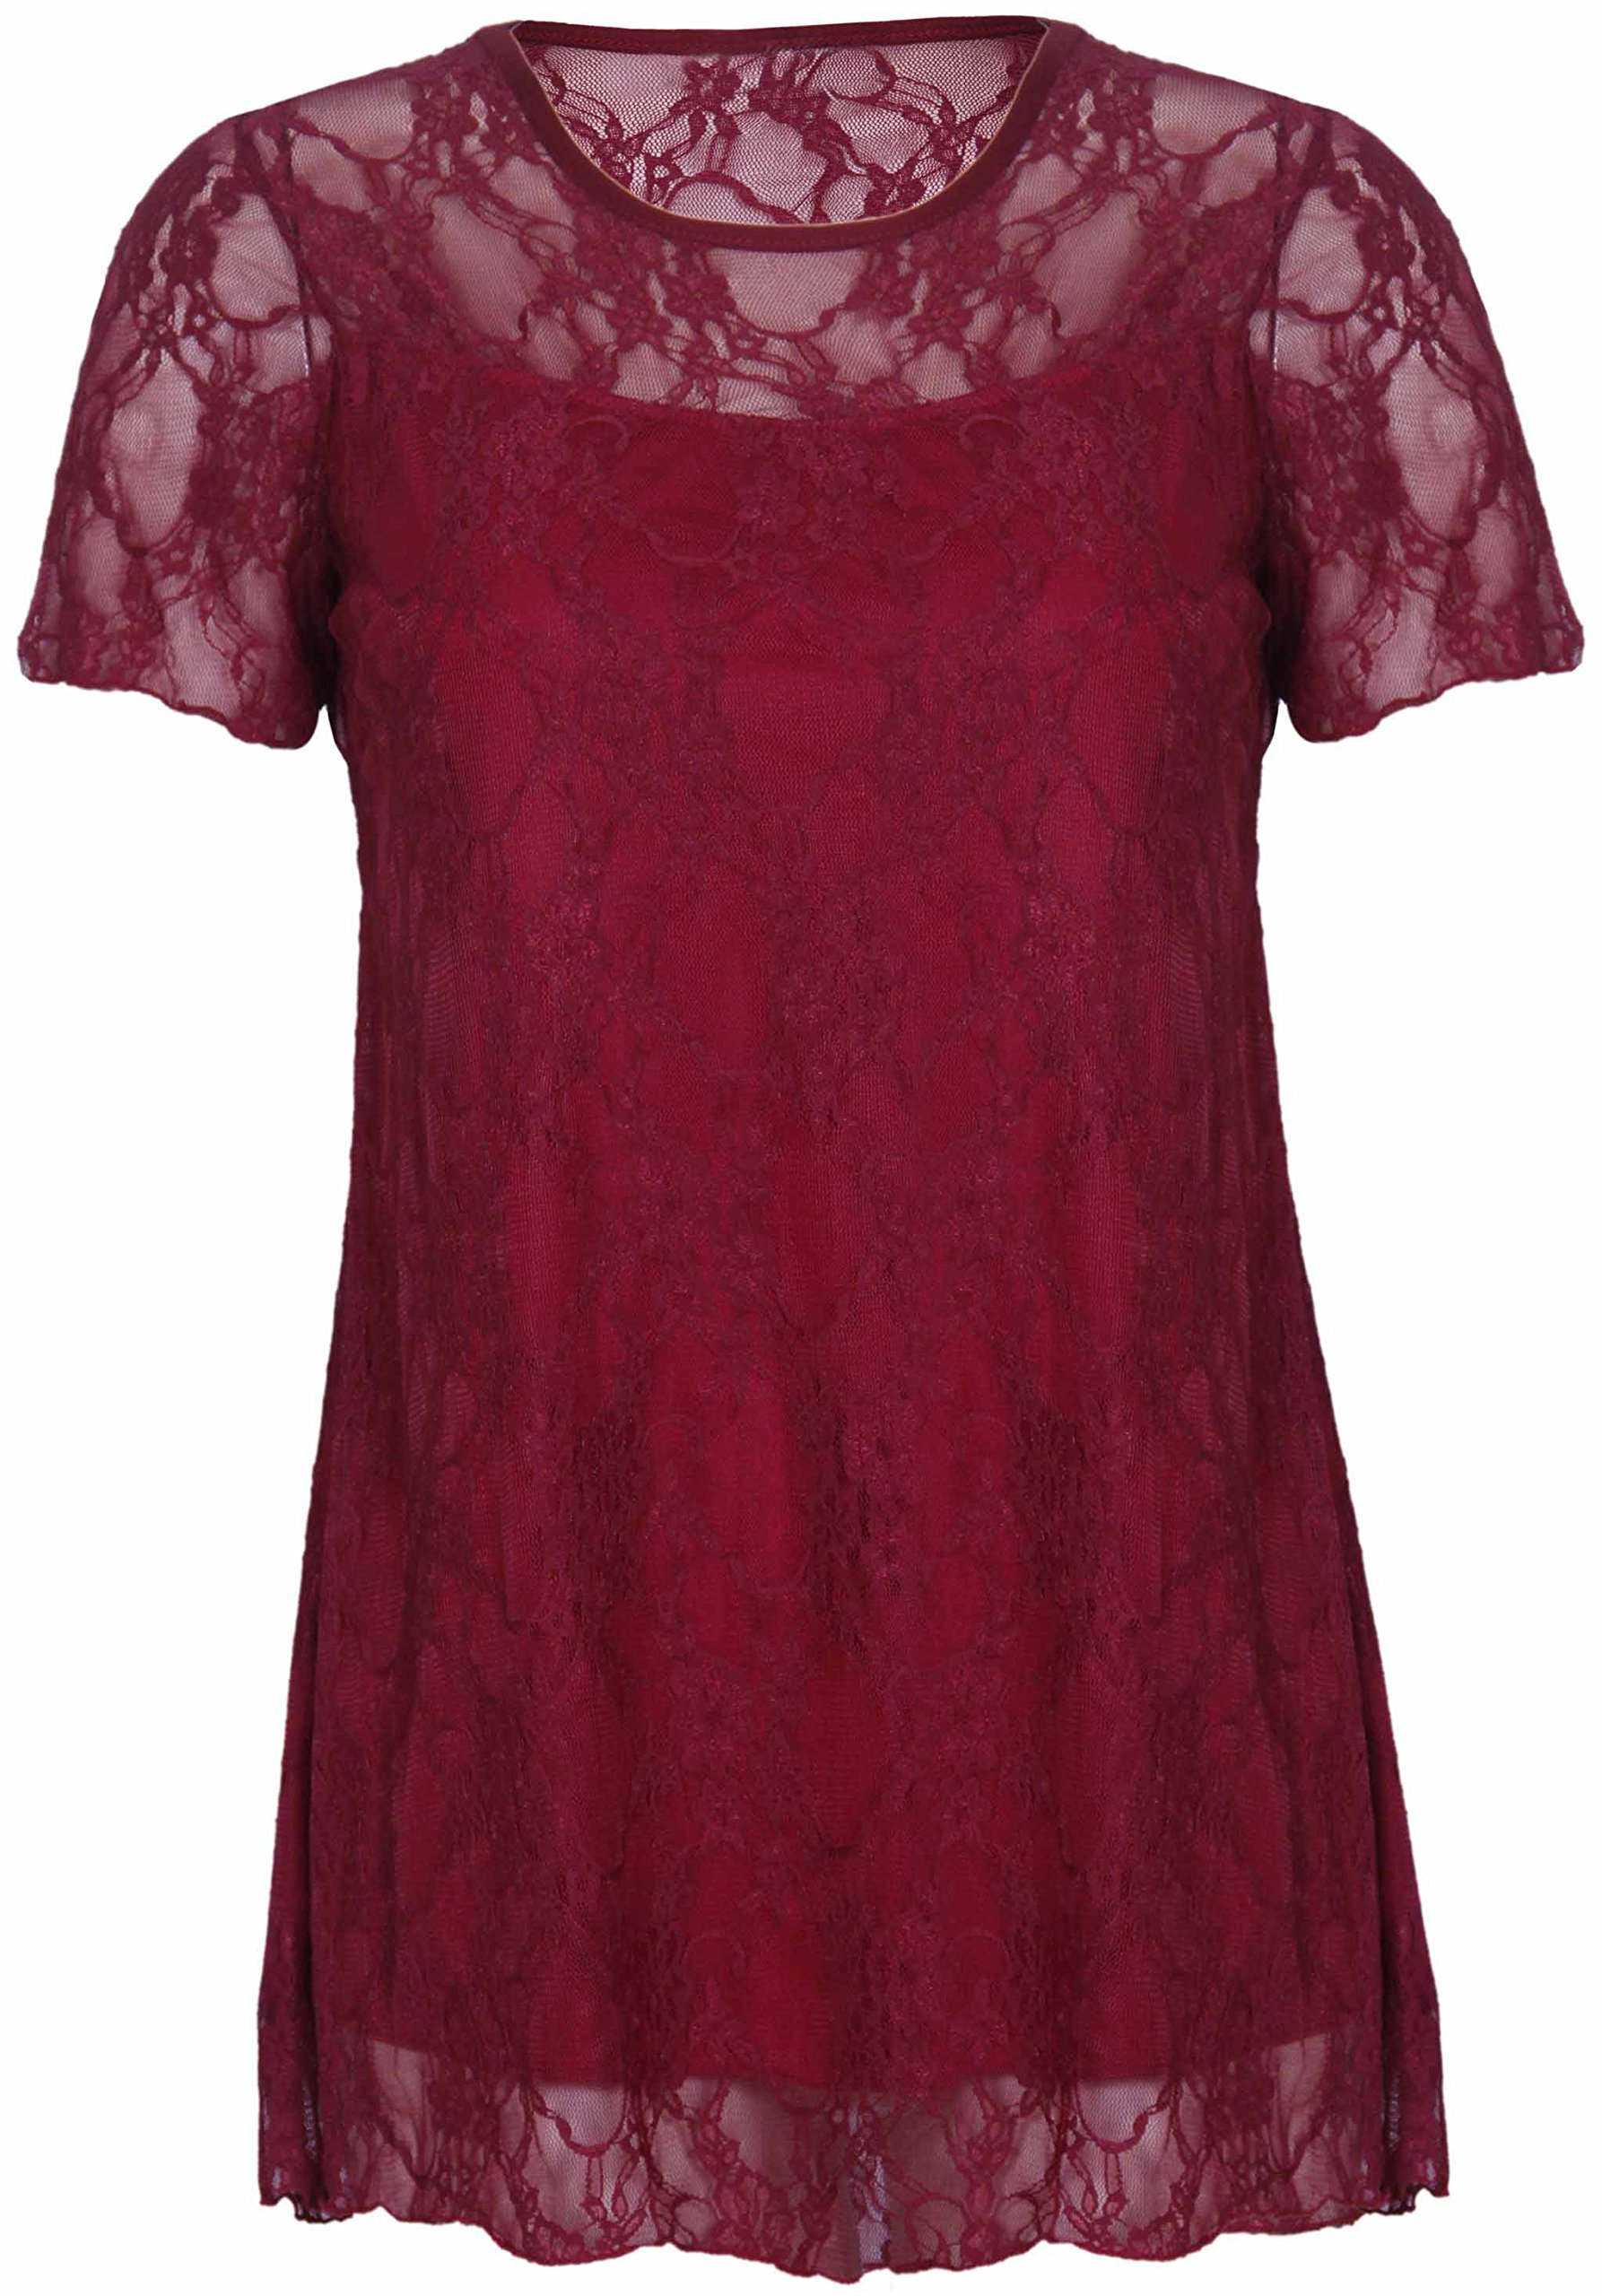 ad36f0e931cf02 Ladies Burgundy Tops Uk